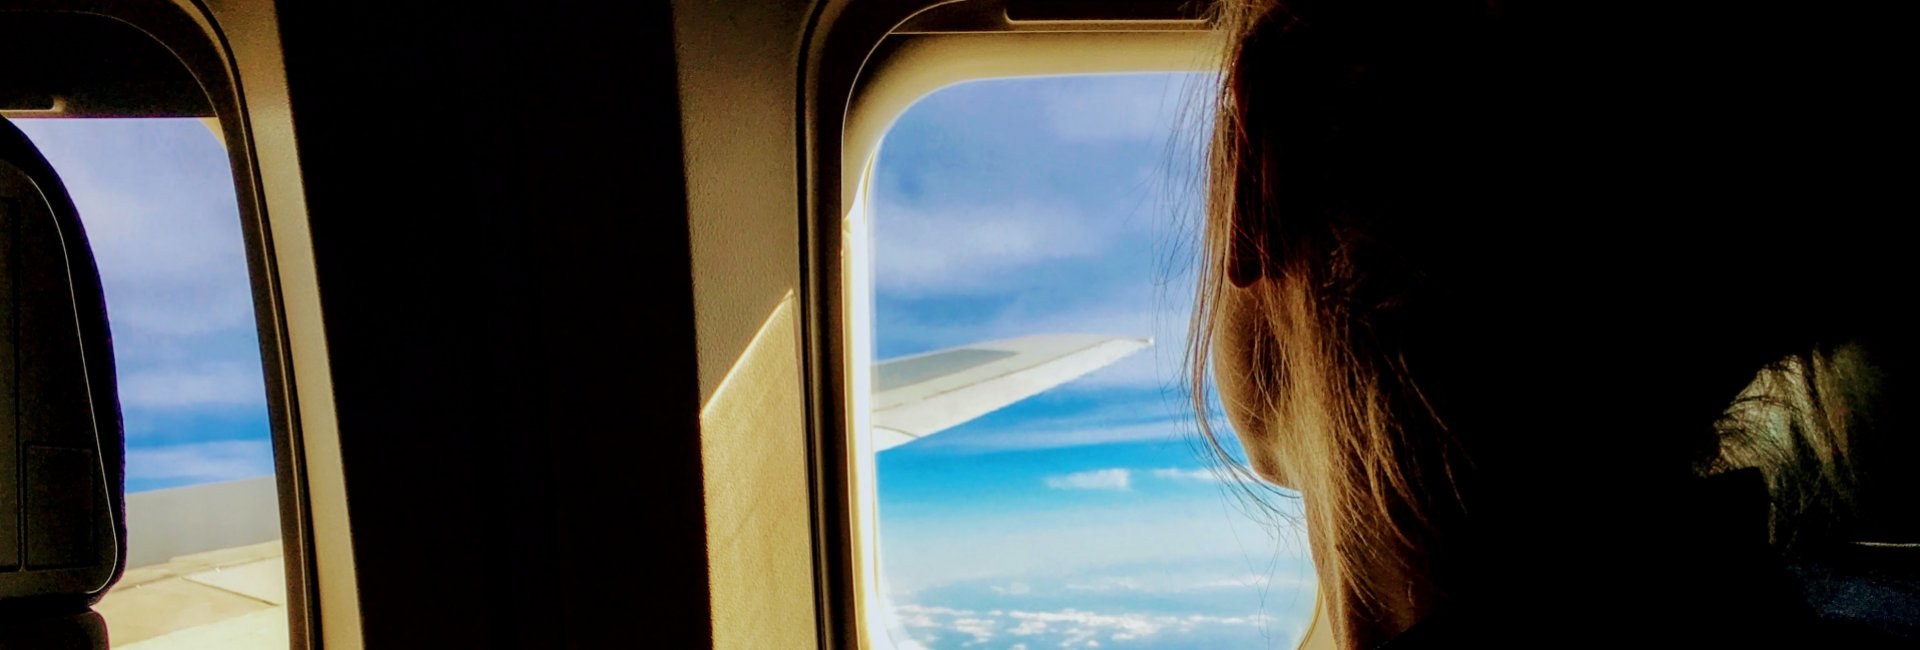 A girl looking out a plane window